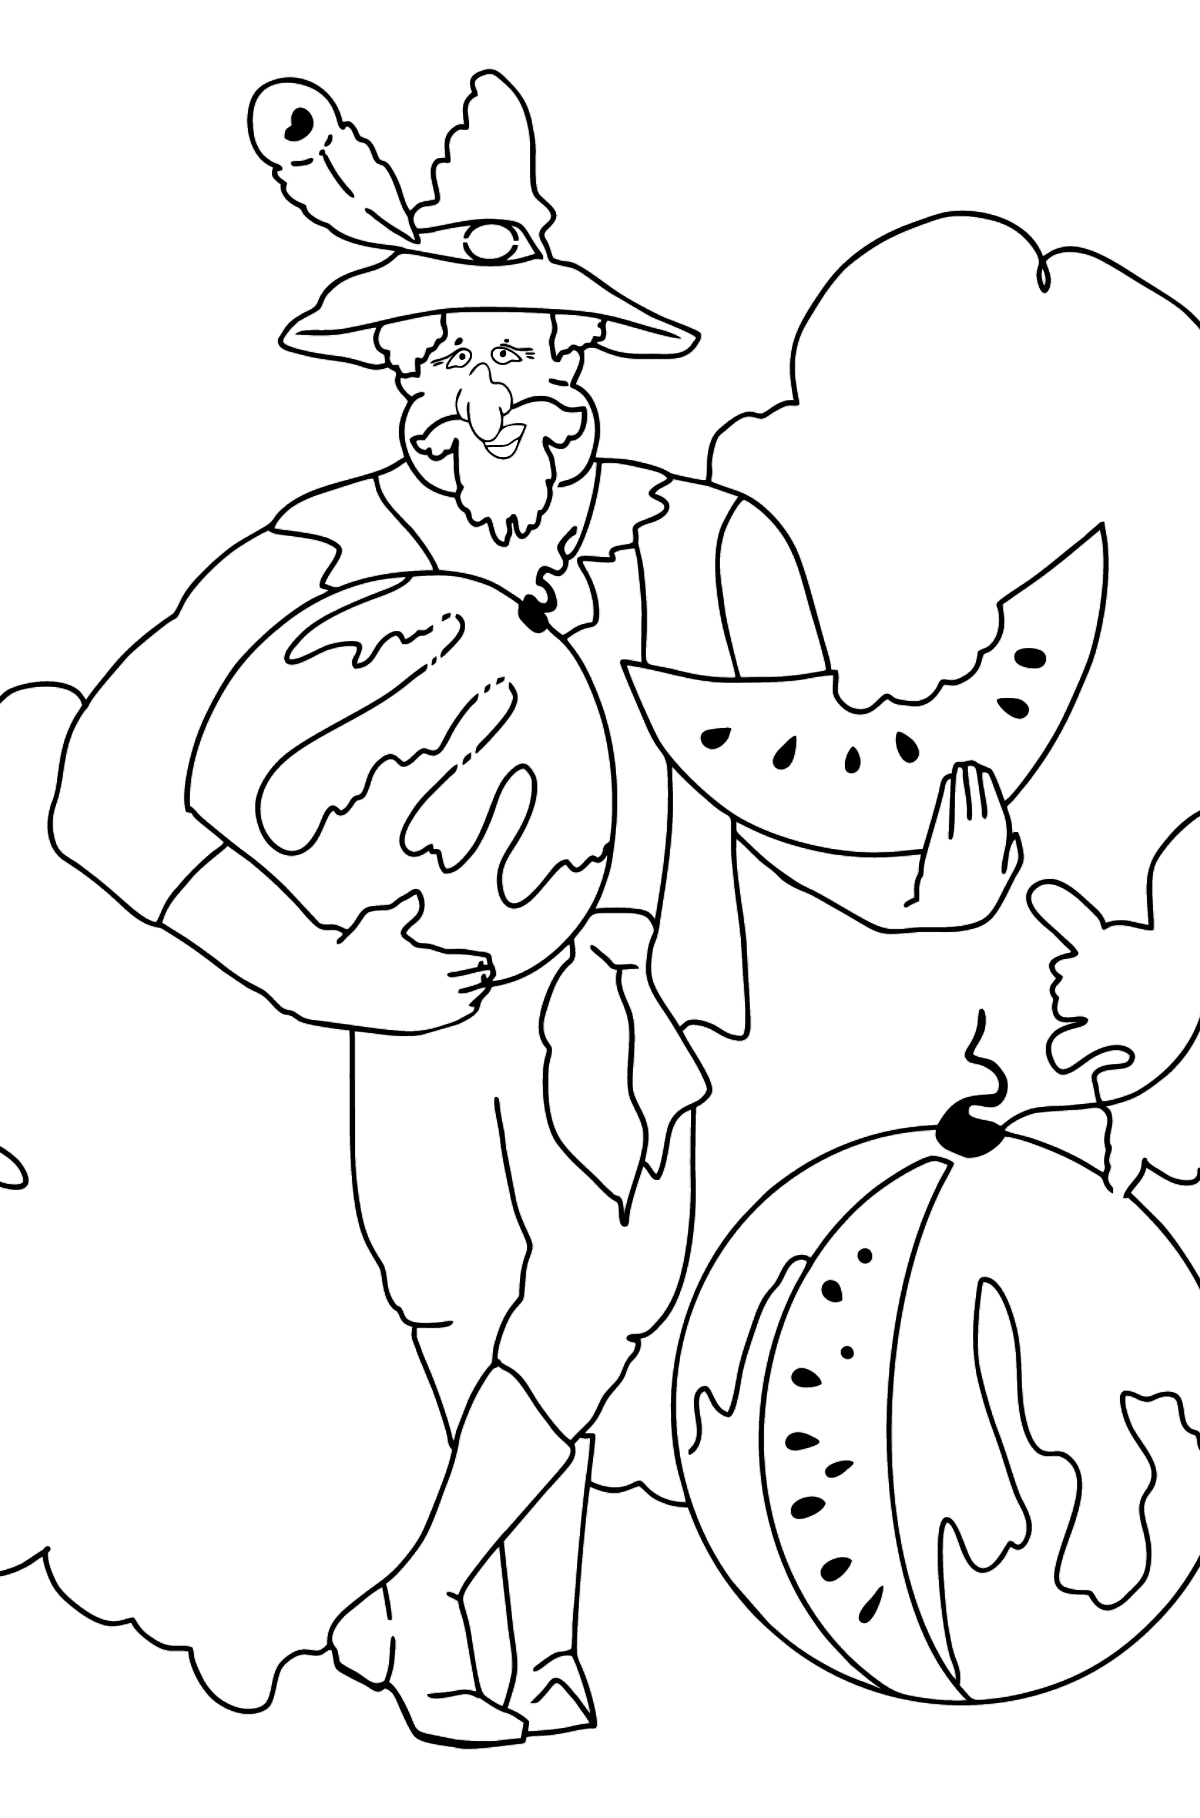 Coloring Page - A Pirate is Eating a Tasty Watermelon - Coloring Pages for Kids